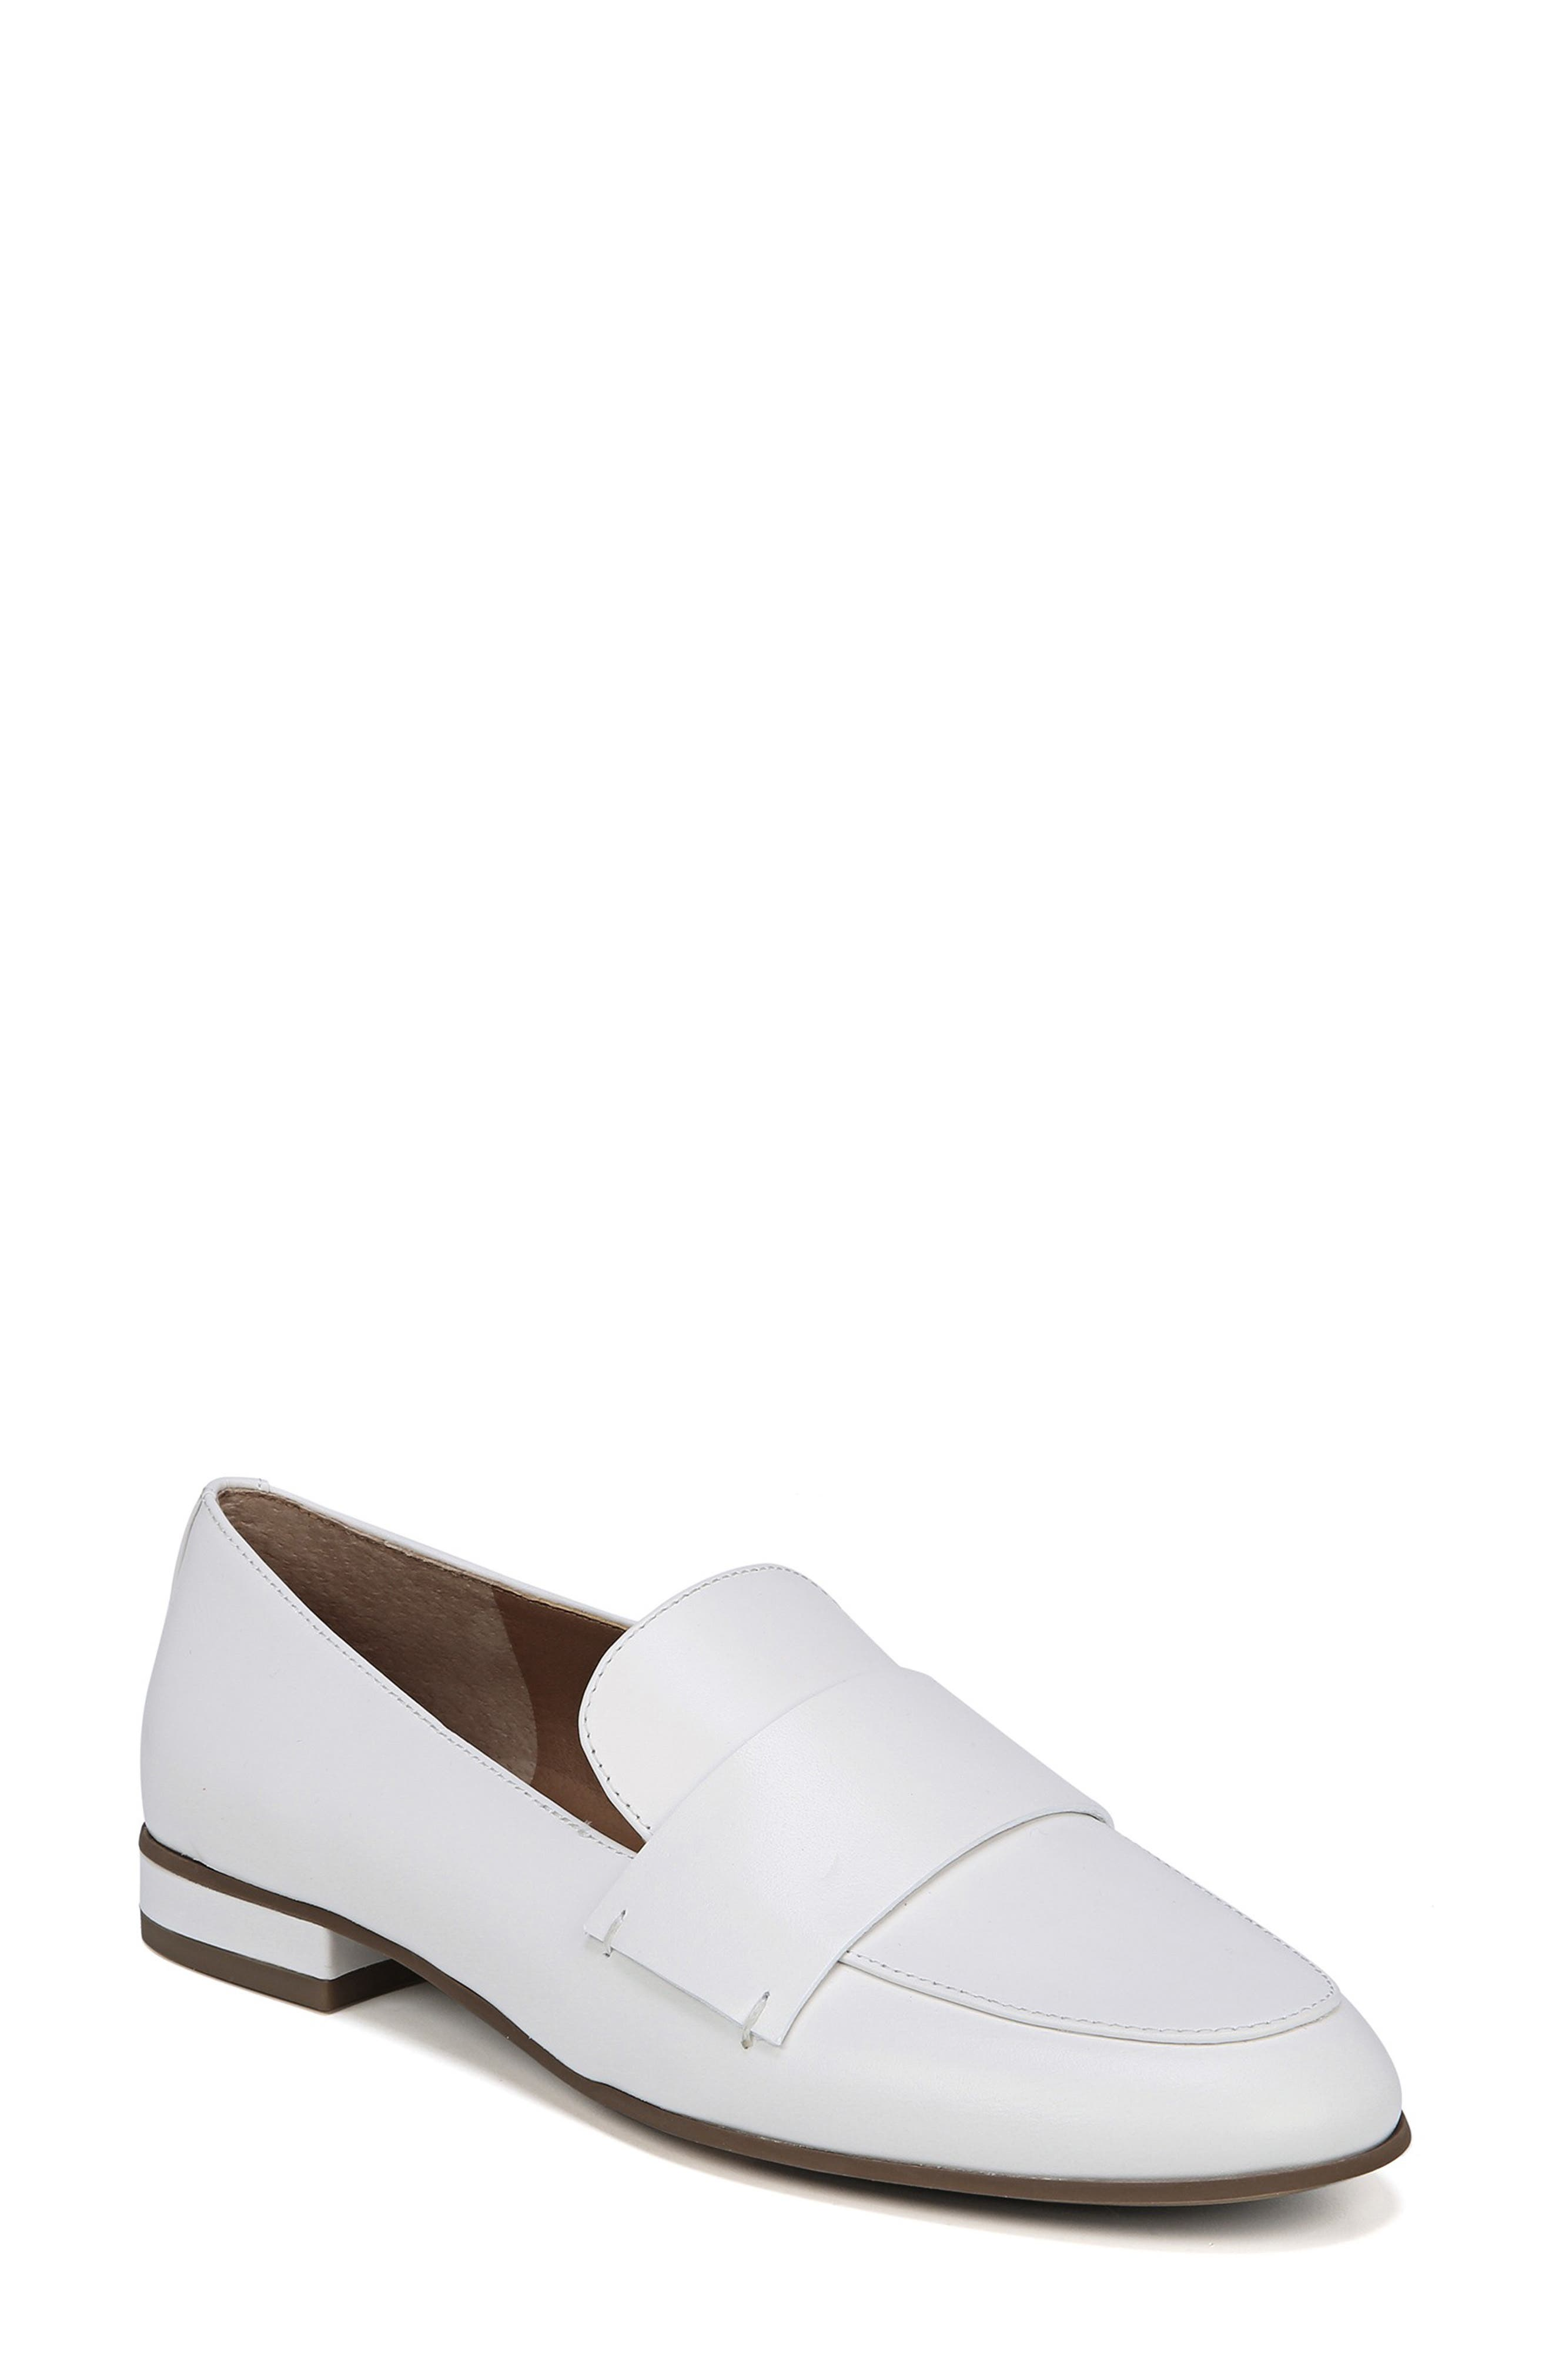 Kip Loafer,                         Main,                         color, WHITE LEATHER